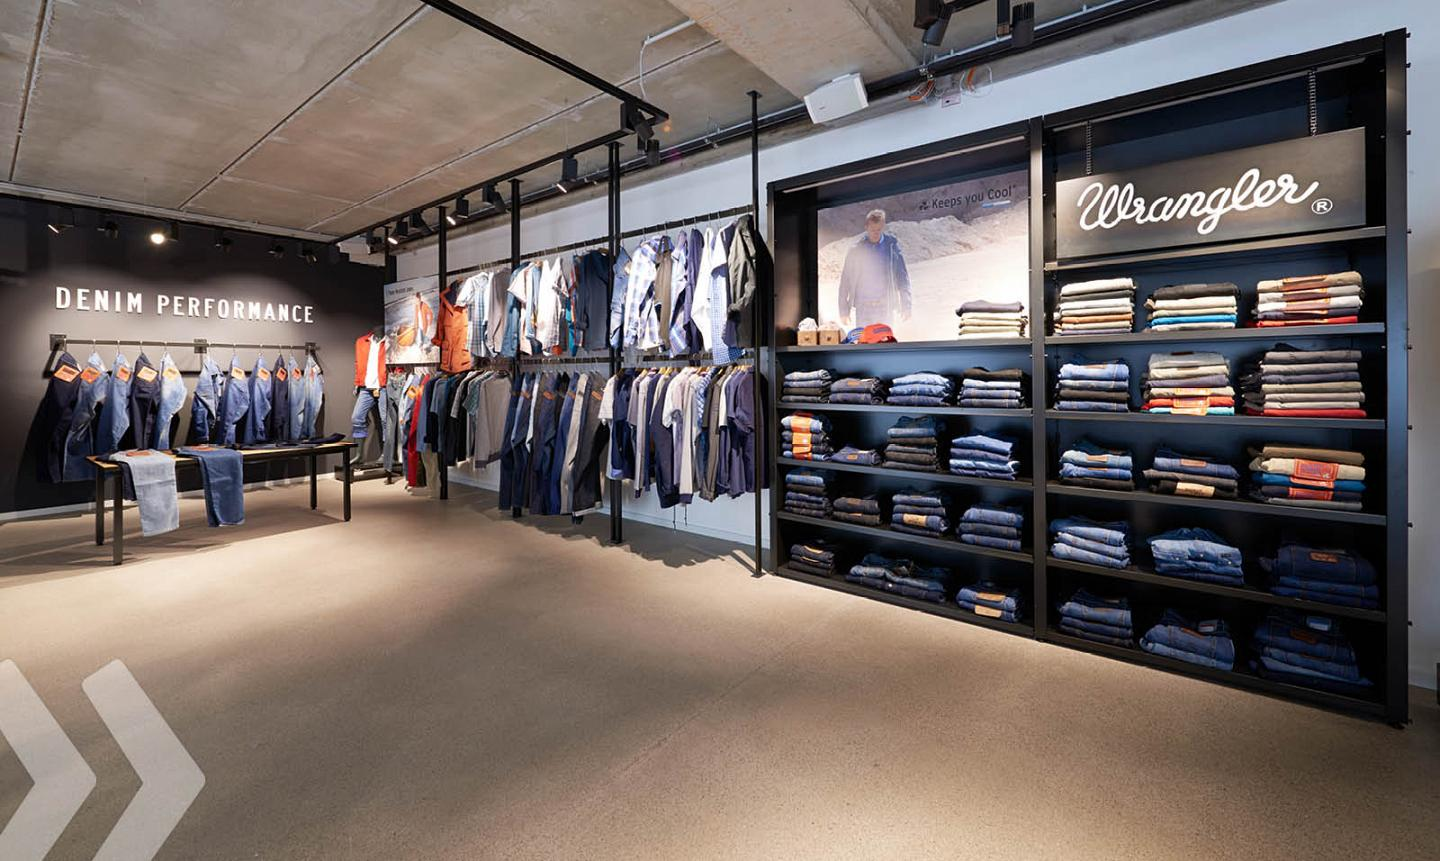 Wrangler Store Fashion Textil - Wall - Wand